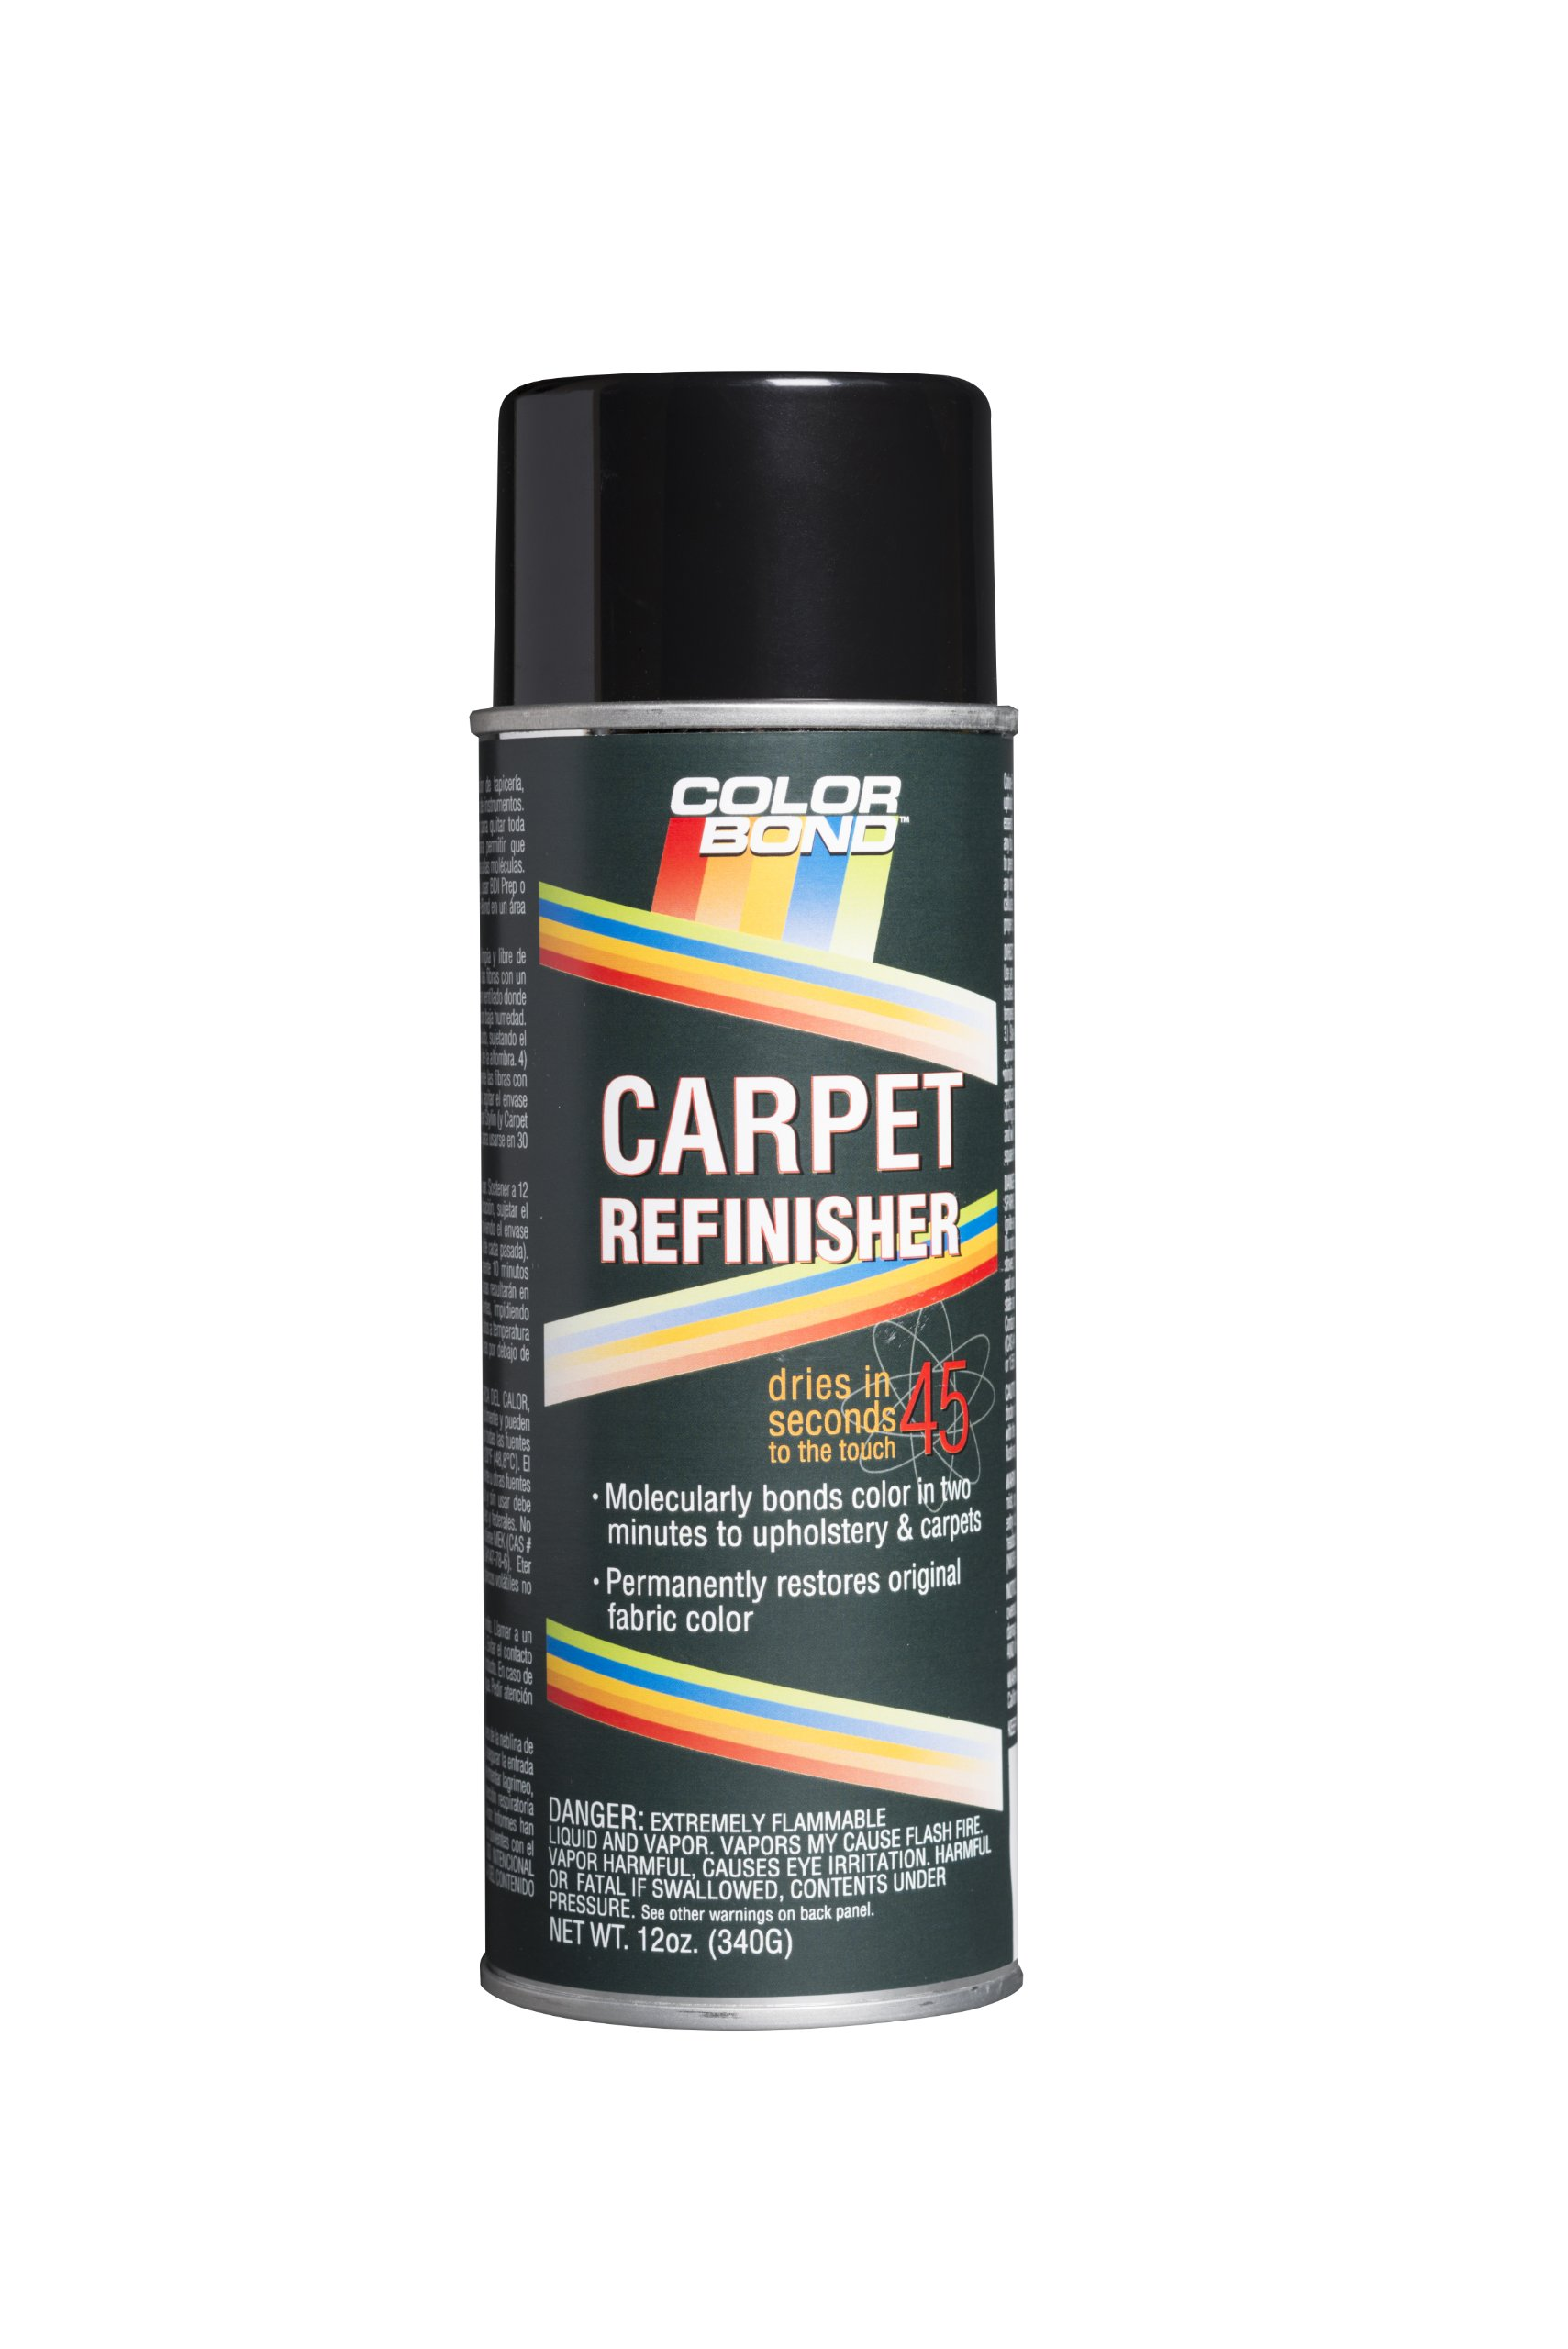 ColorBond (271) Black Carpet Refinisher - 12 oz.